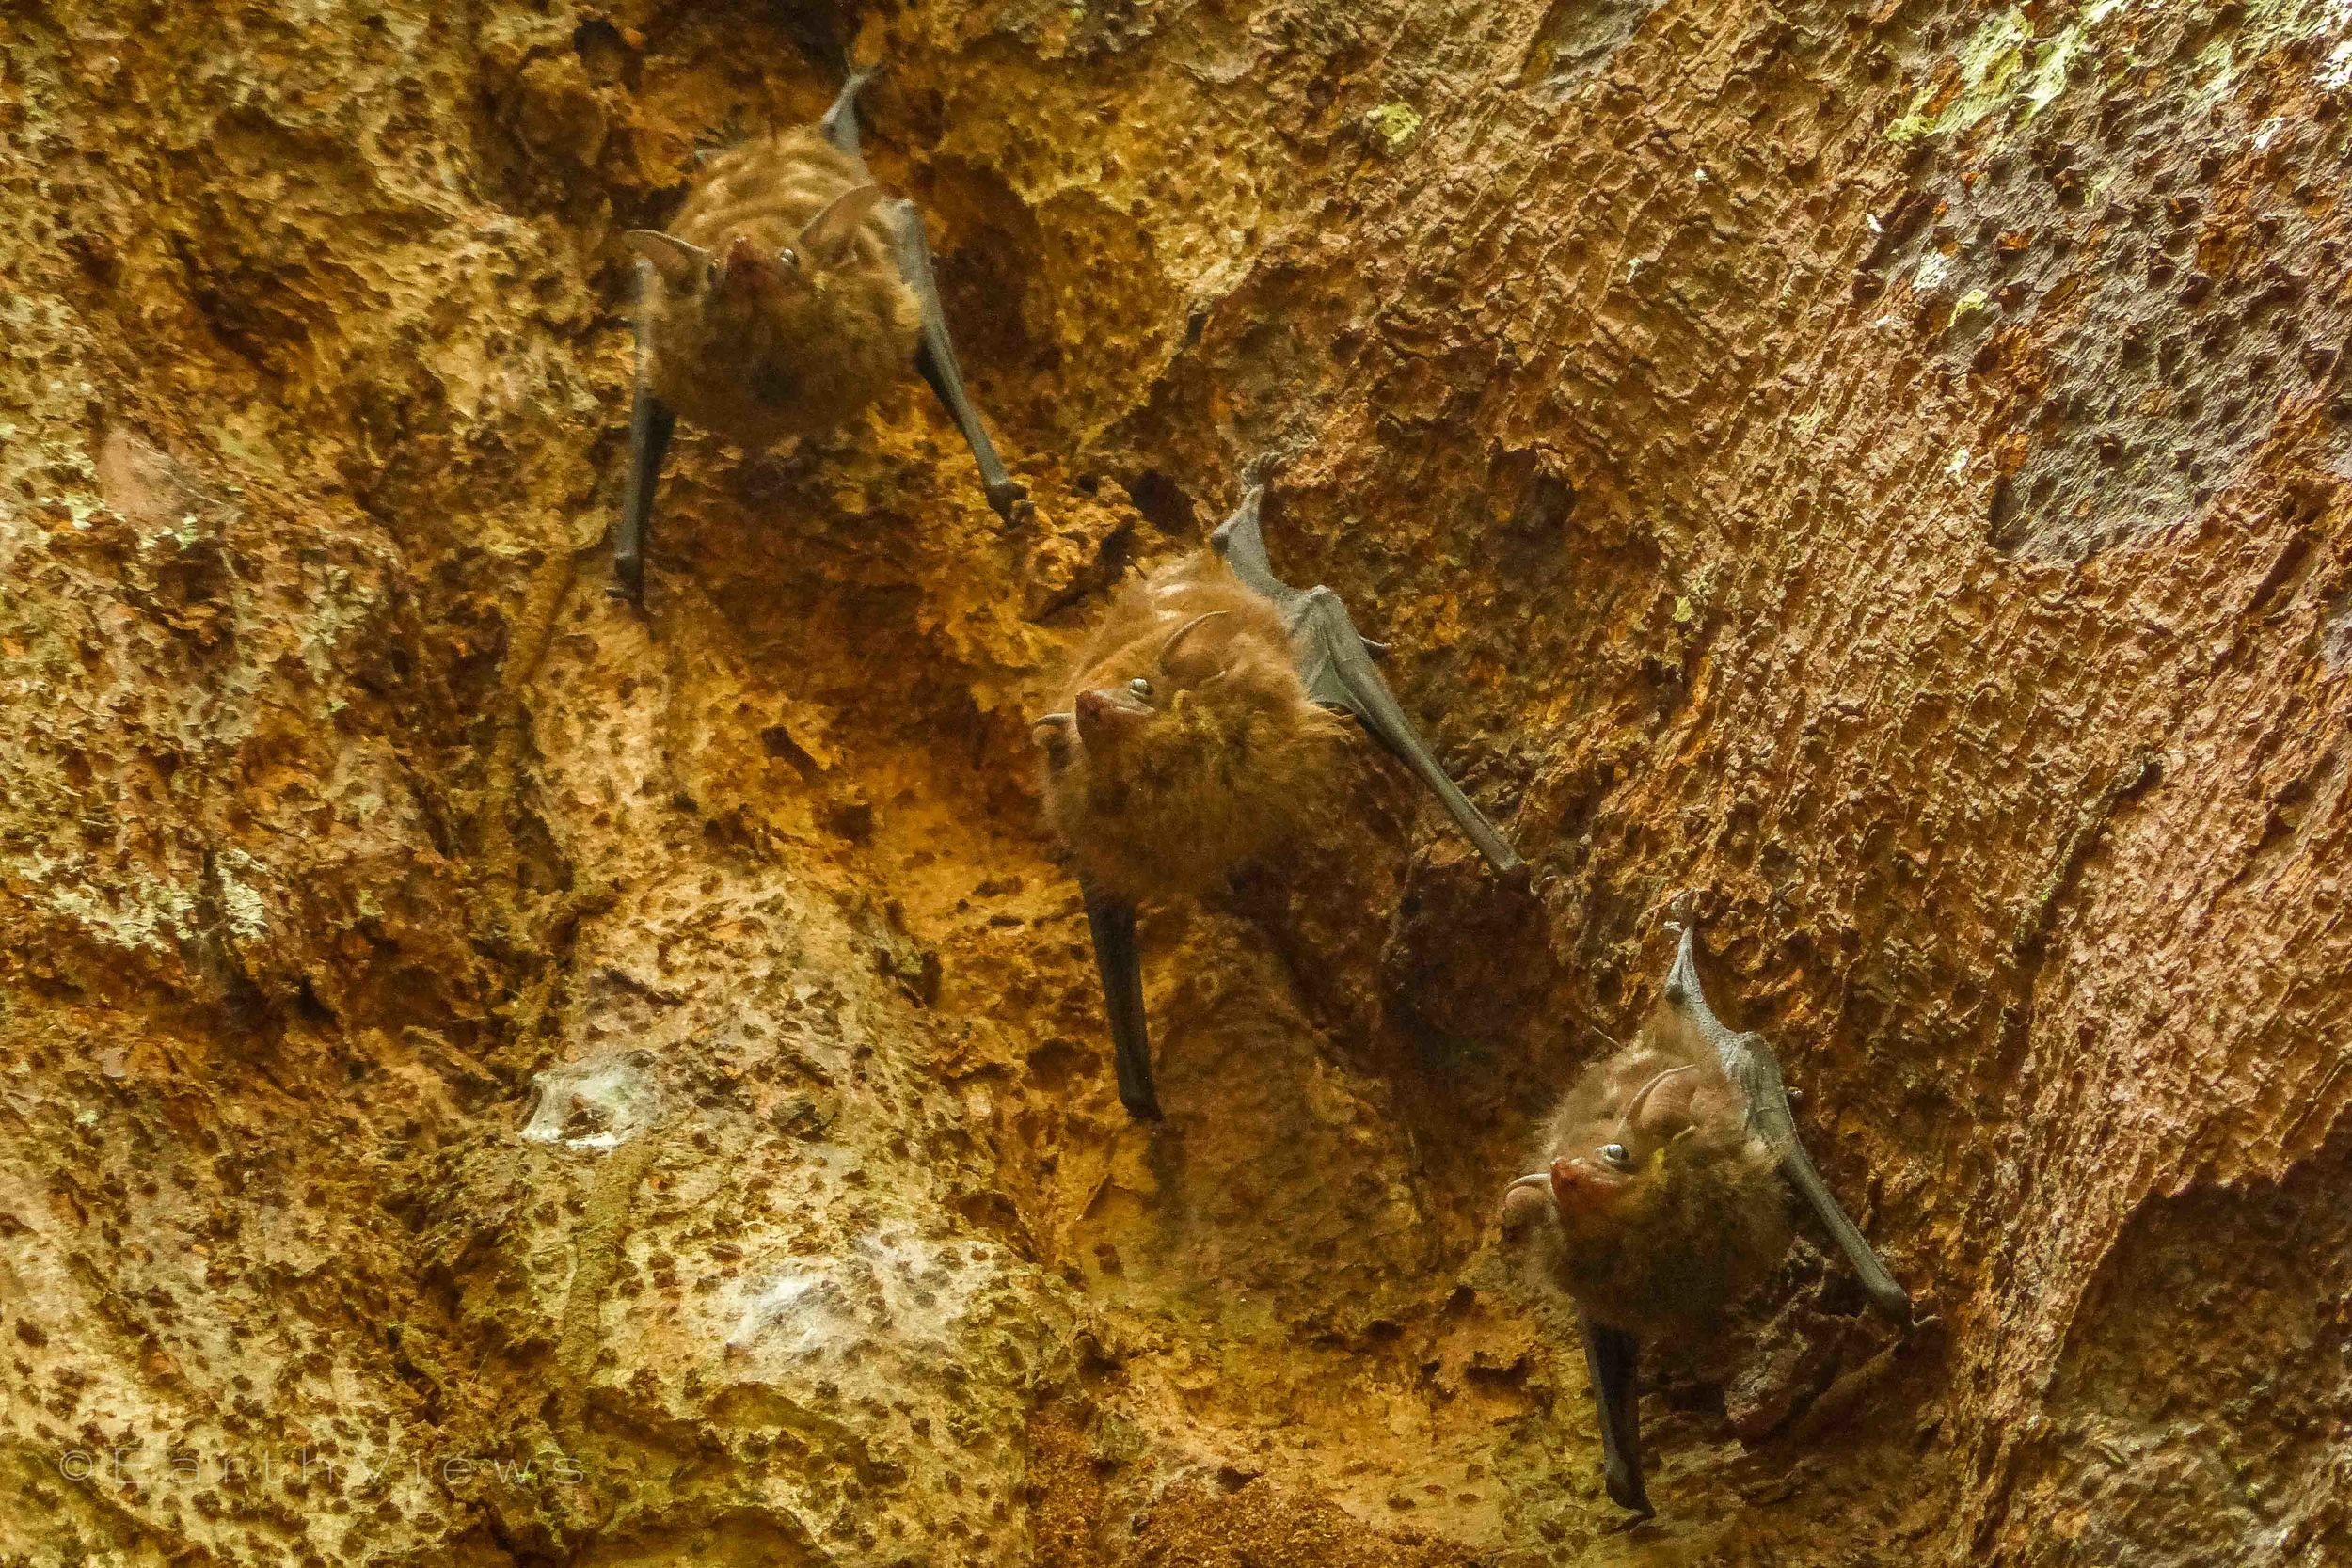 Three Bats, well camouflaged, doing their weird moves.